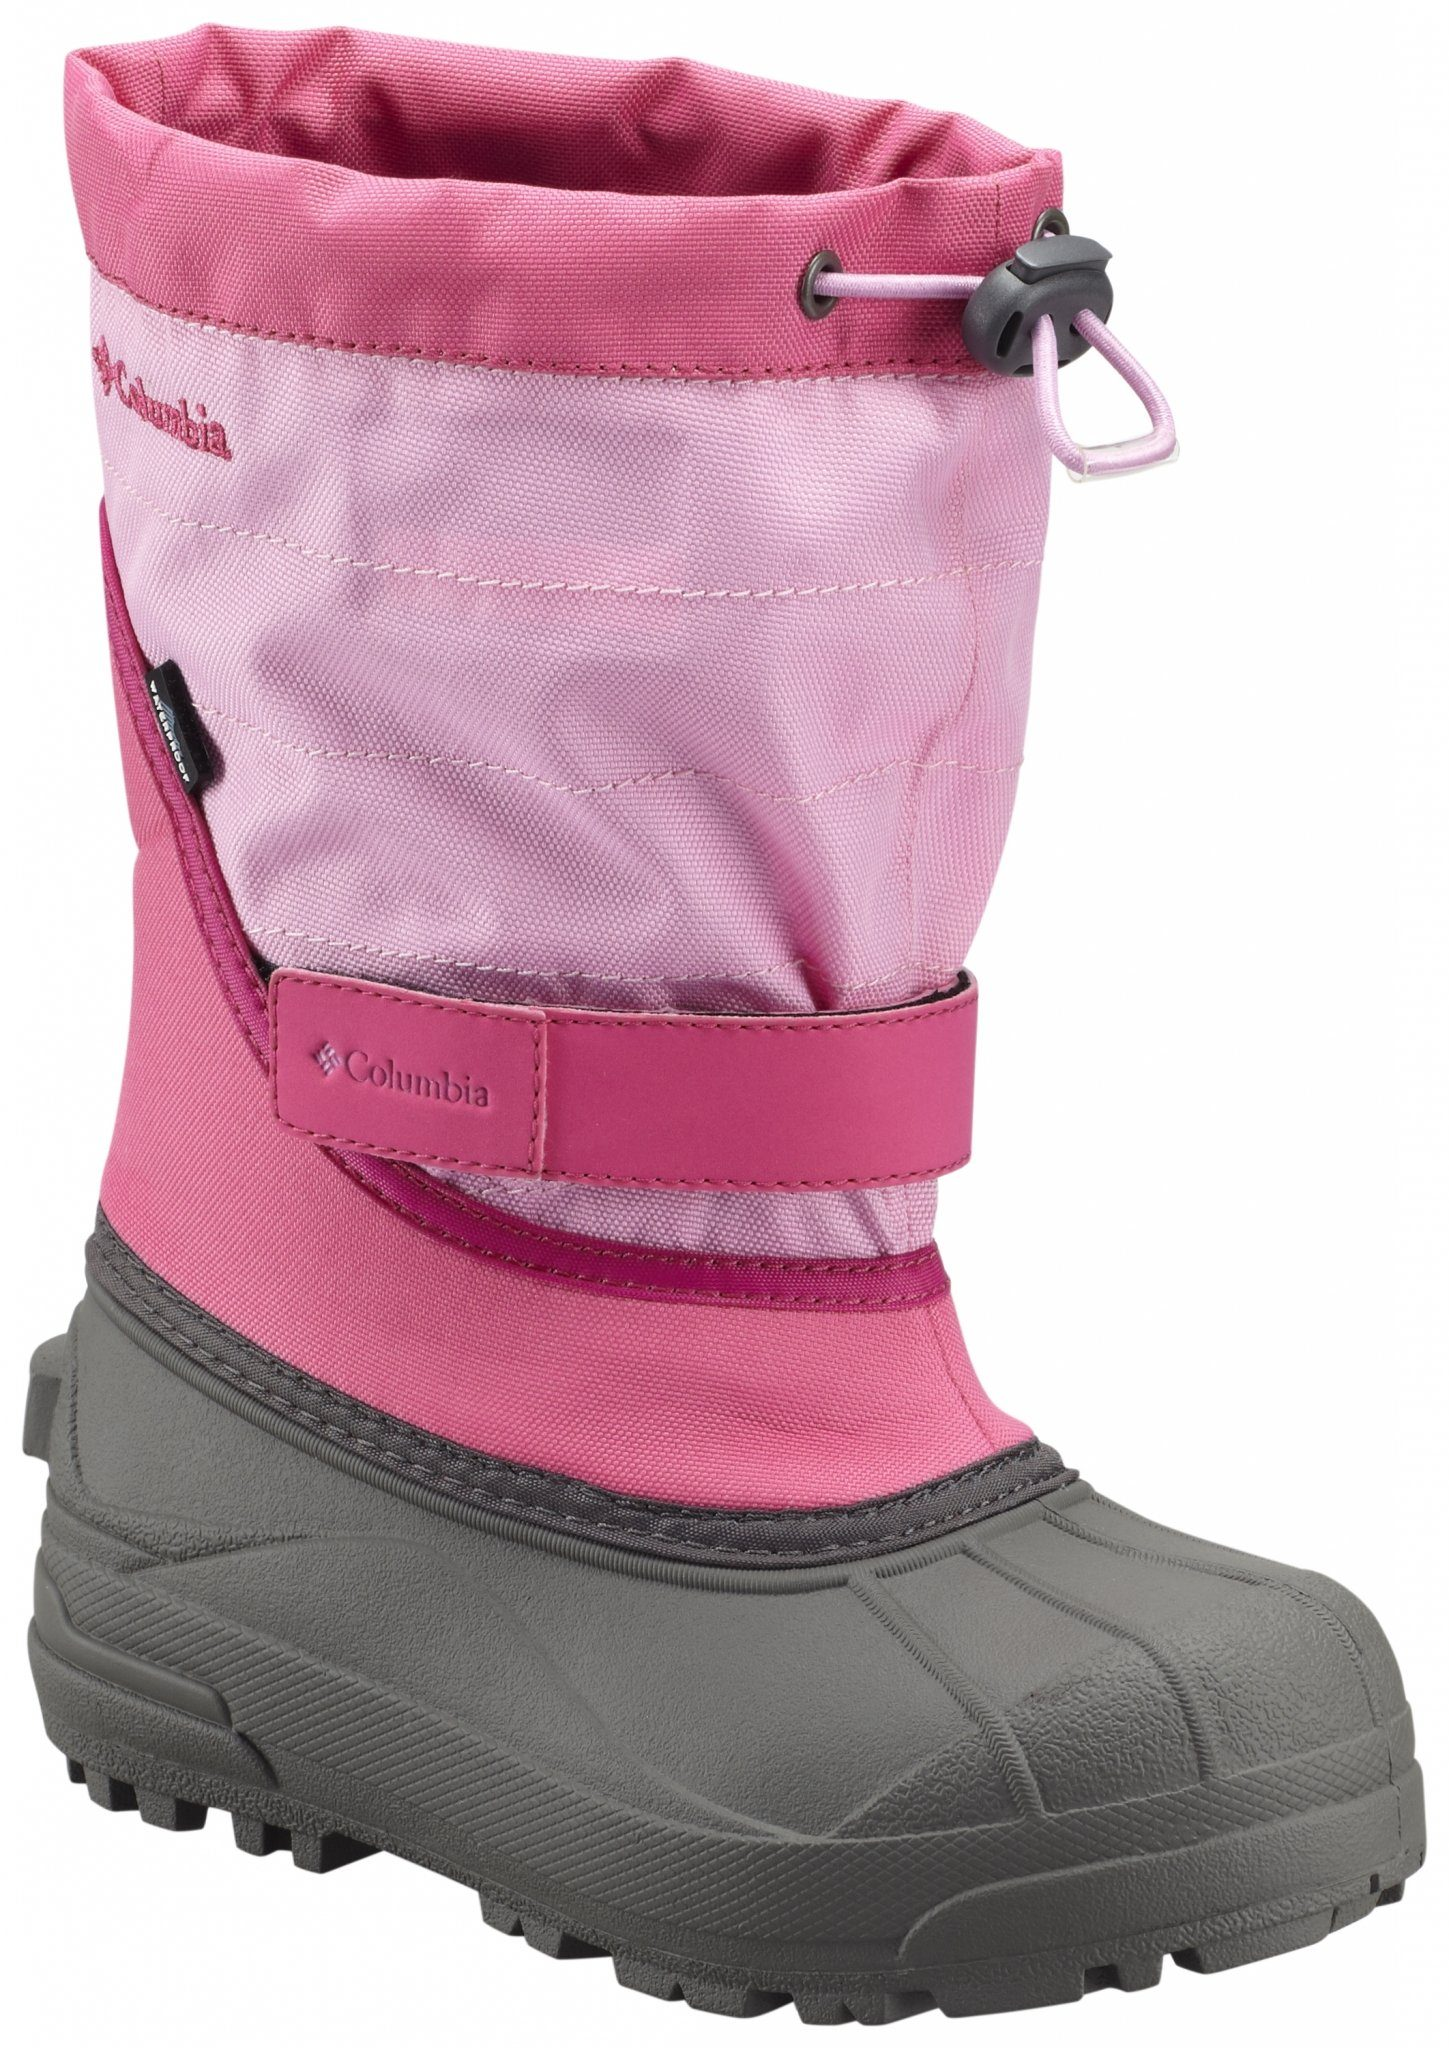 Columbia Stiefel »Powderbug Plus II Boots Youth«